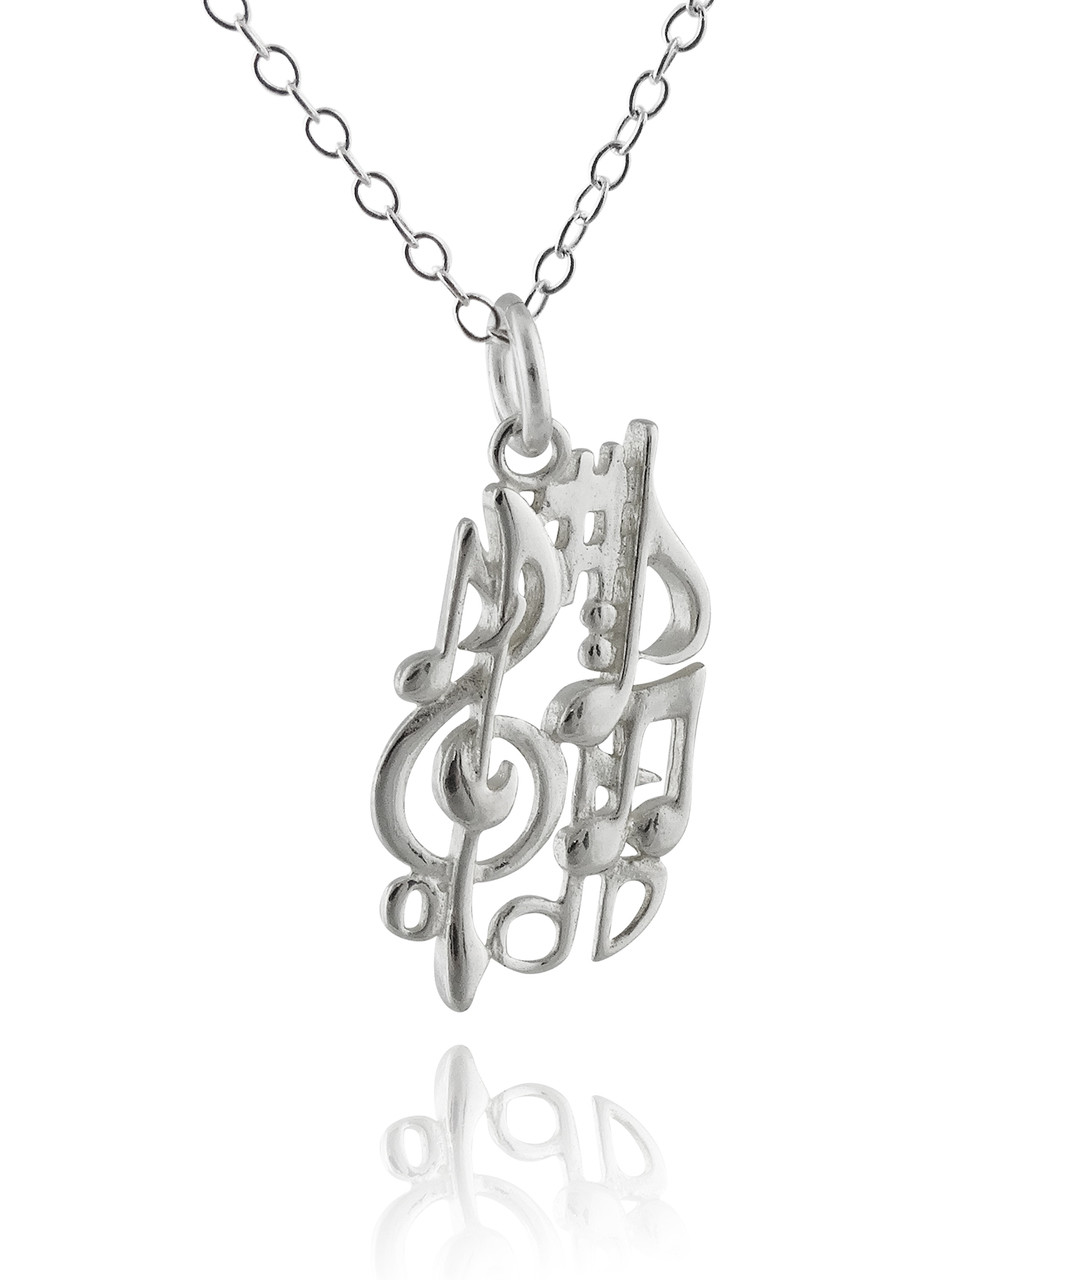 Music Notes Necklace 925 Sterling Silver Fashionjunkie4life